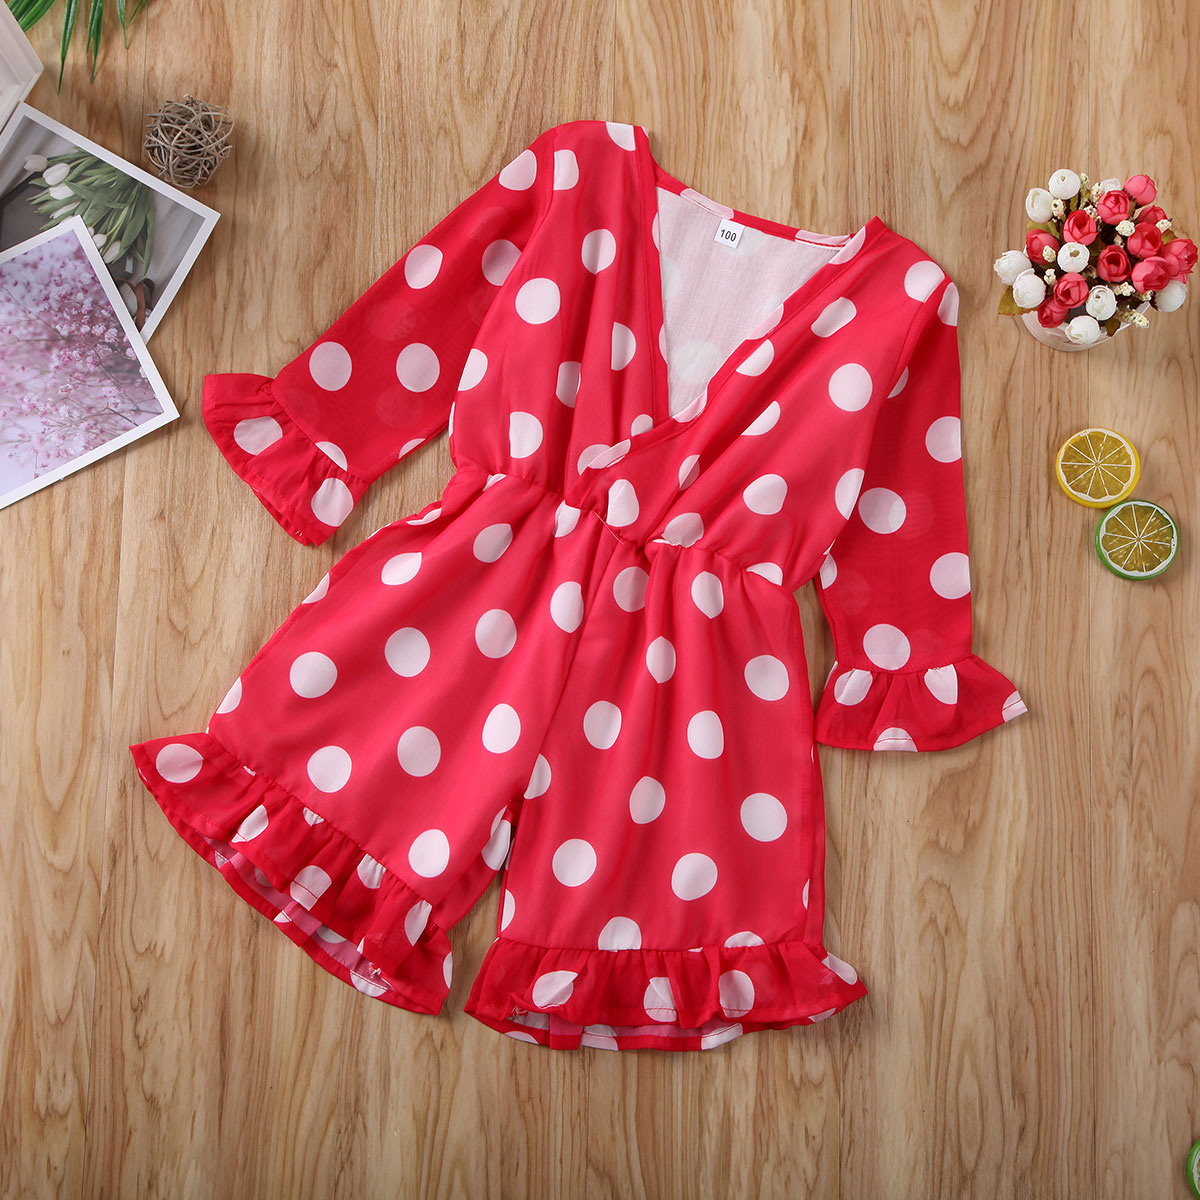 Pudcoco Toddler Baby Girl Clothes Polka Dot Long Sleeve Romper Jumpsuit One-Piece Outfit Sunsuit Overall Clothes